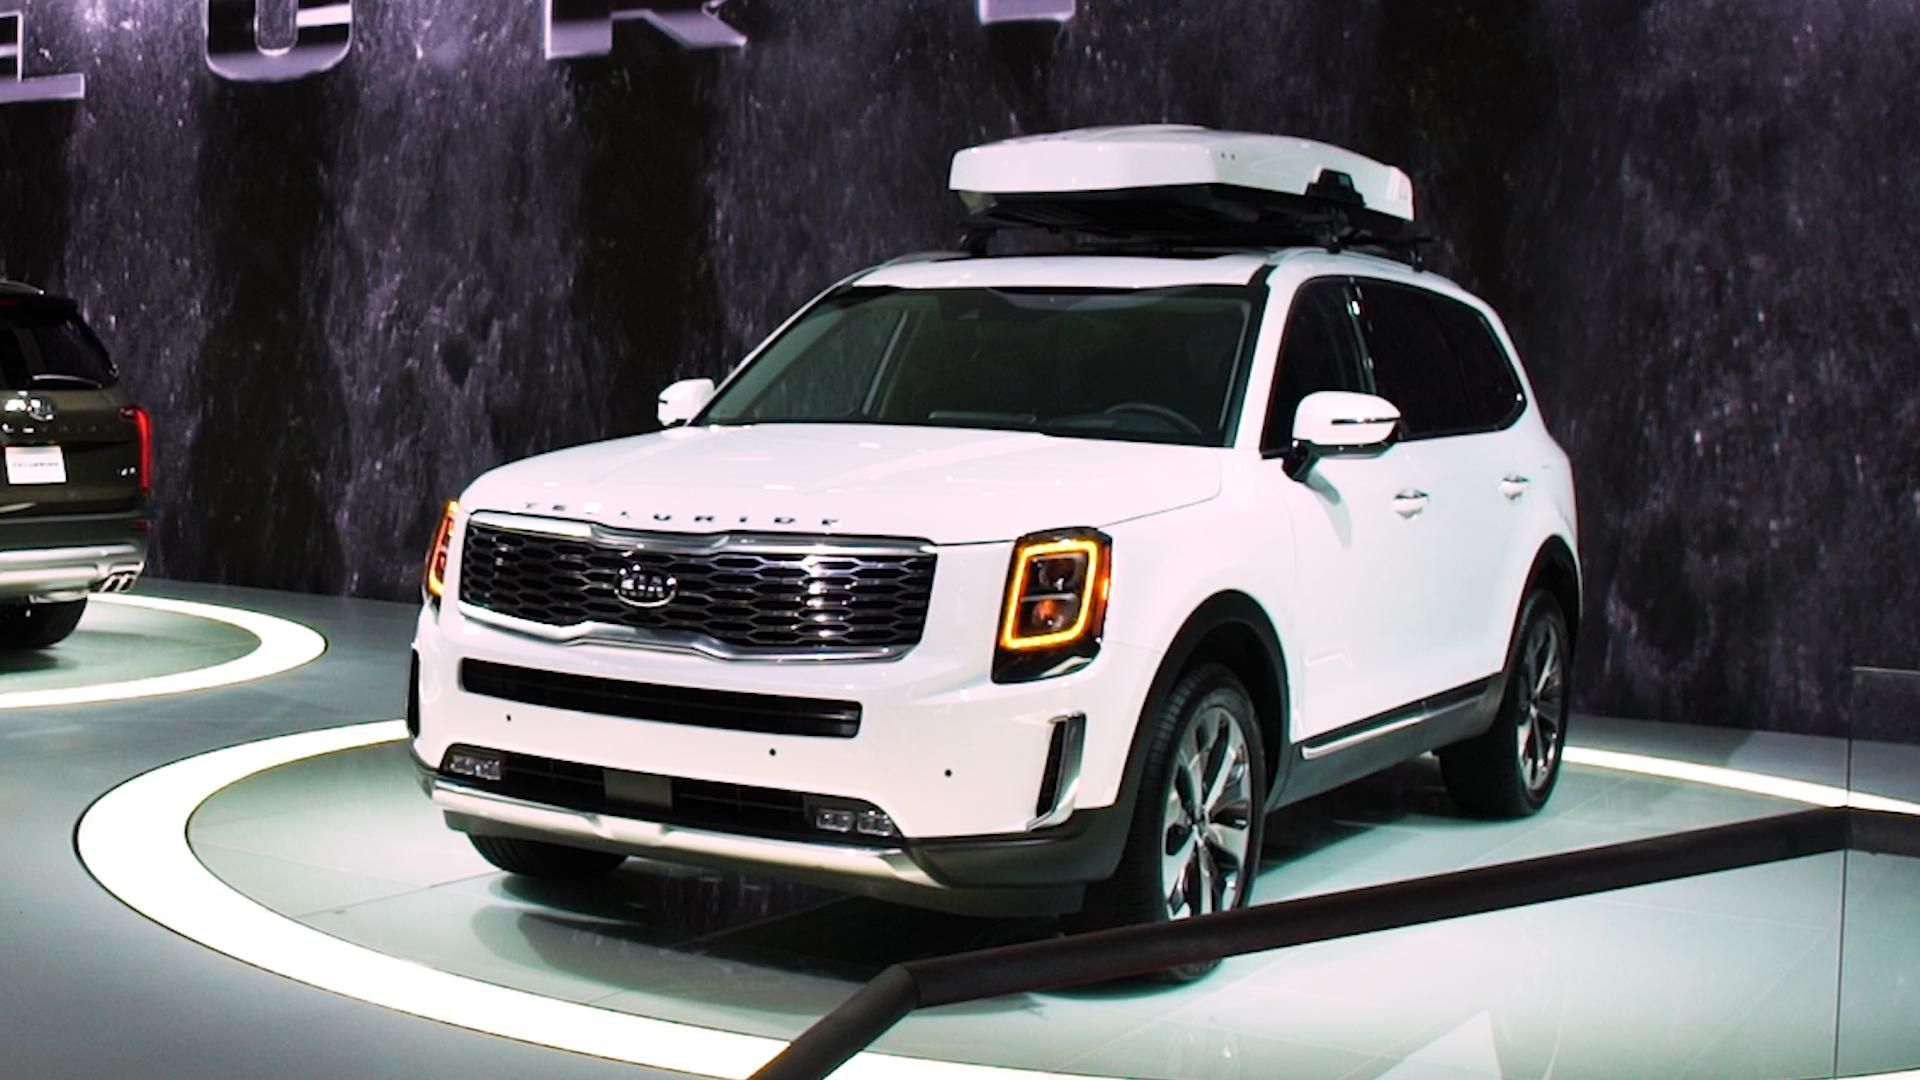 AllNew 2020 Kia Telluride Looks Big and Brawny The all